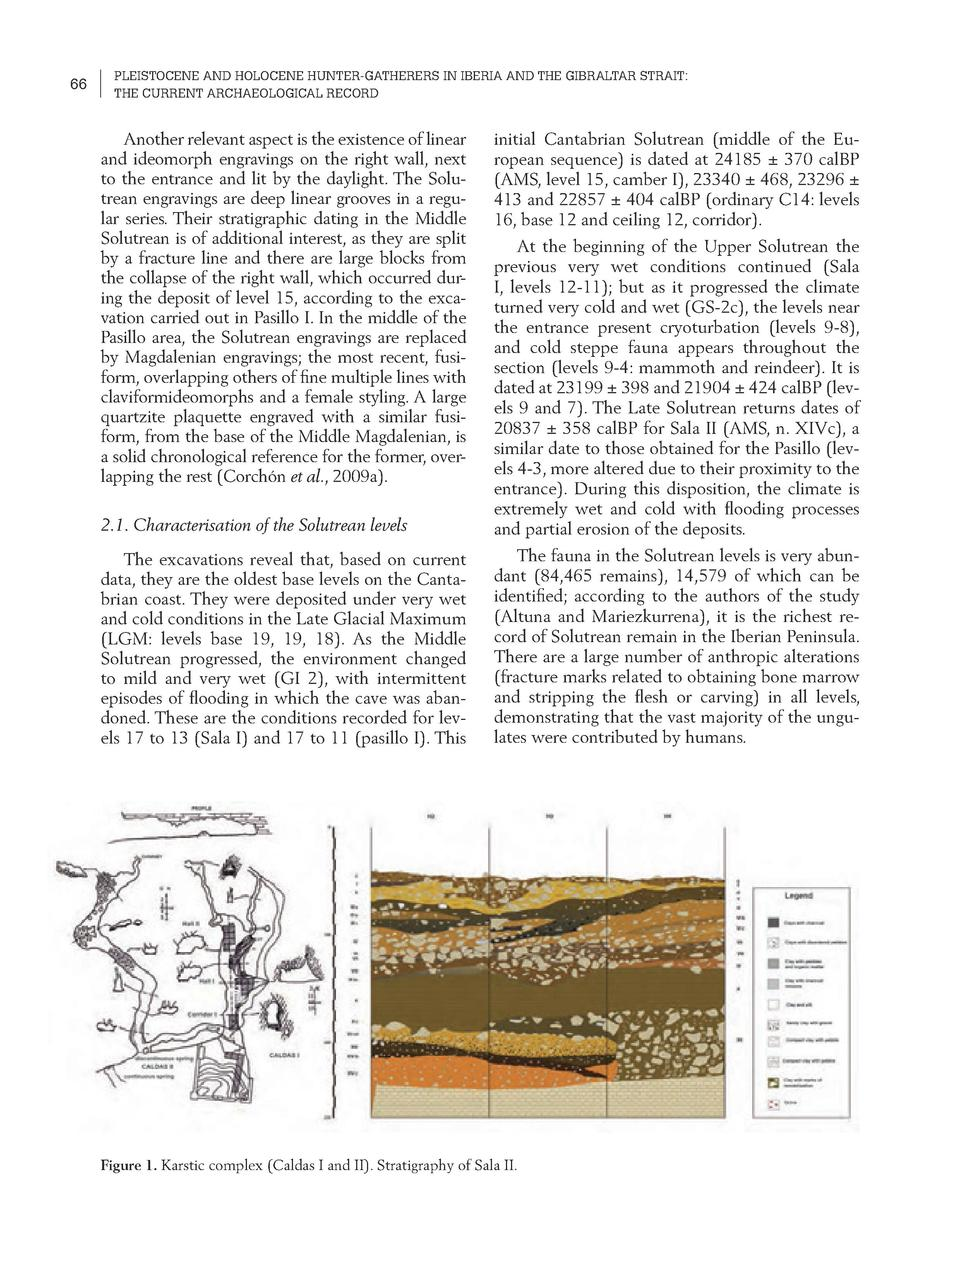 66  PLEISTOCENE AND HOLOCENE HUNTER-GATHERERS IN IBERIA AND THE GIBRALTAR STRAIT  THE CURRENT ARCHAEOLOGICAL RECORD  Anoth...